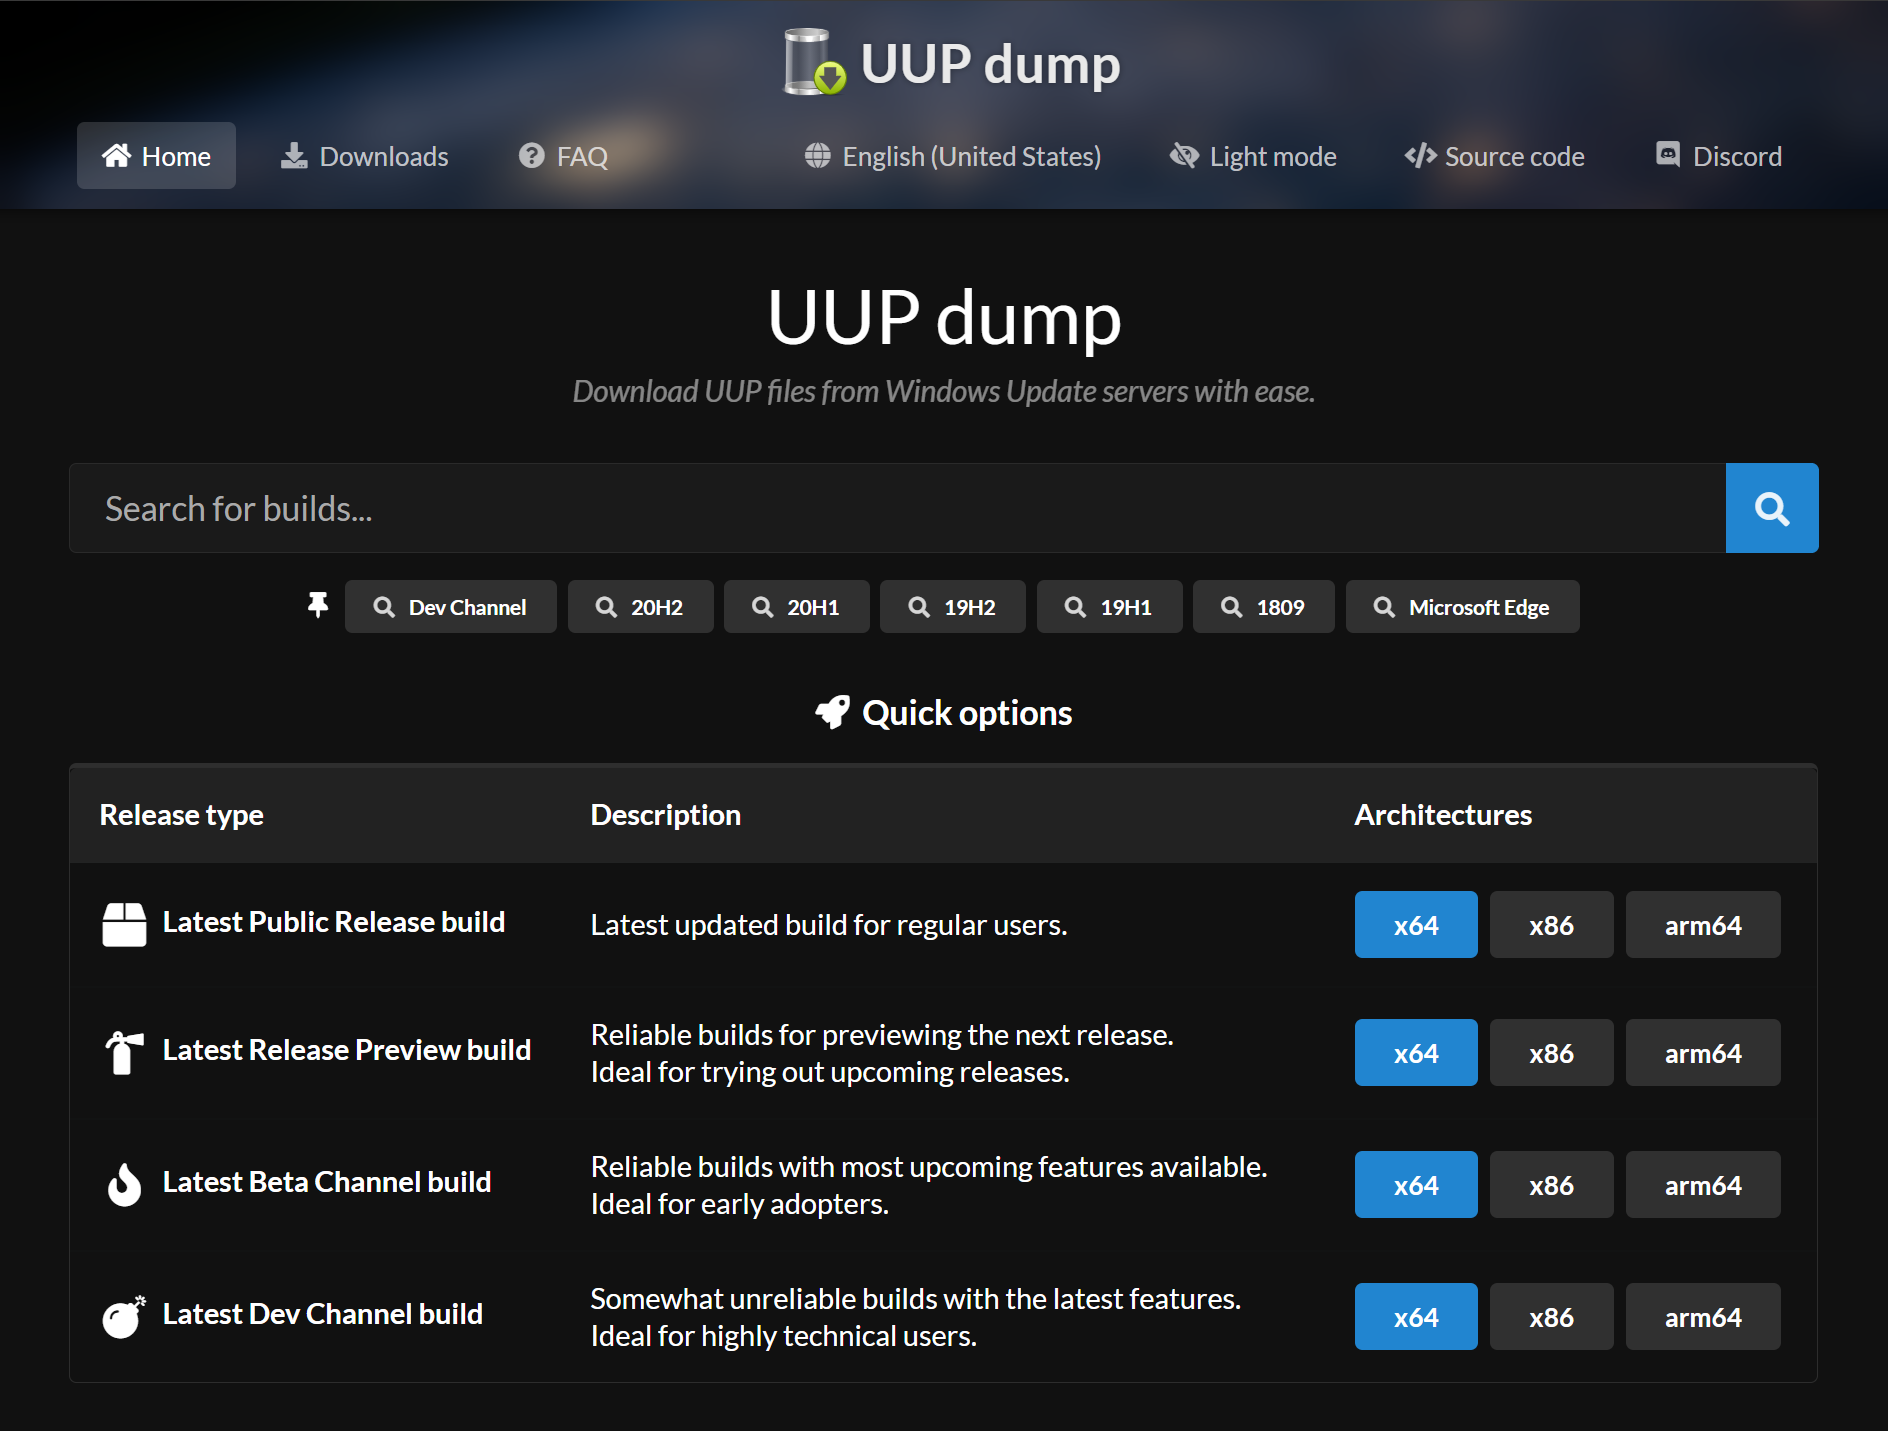 The UUPdump website Welcome Page